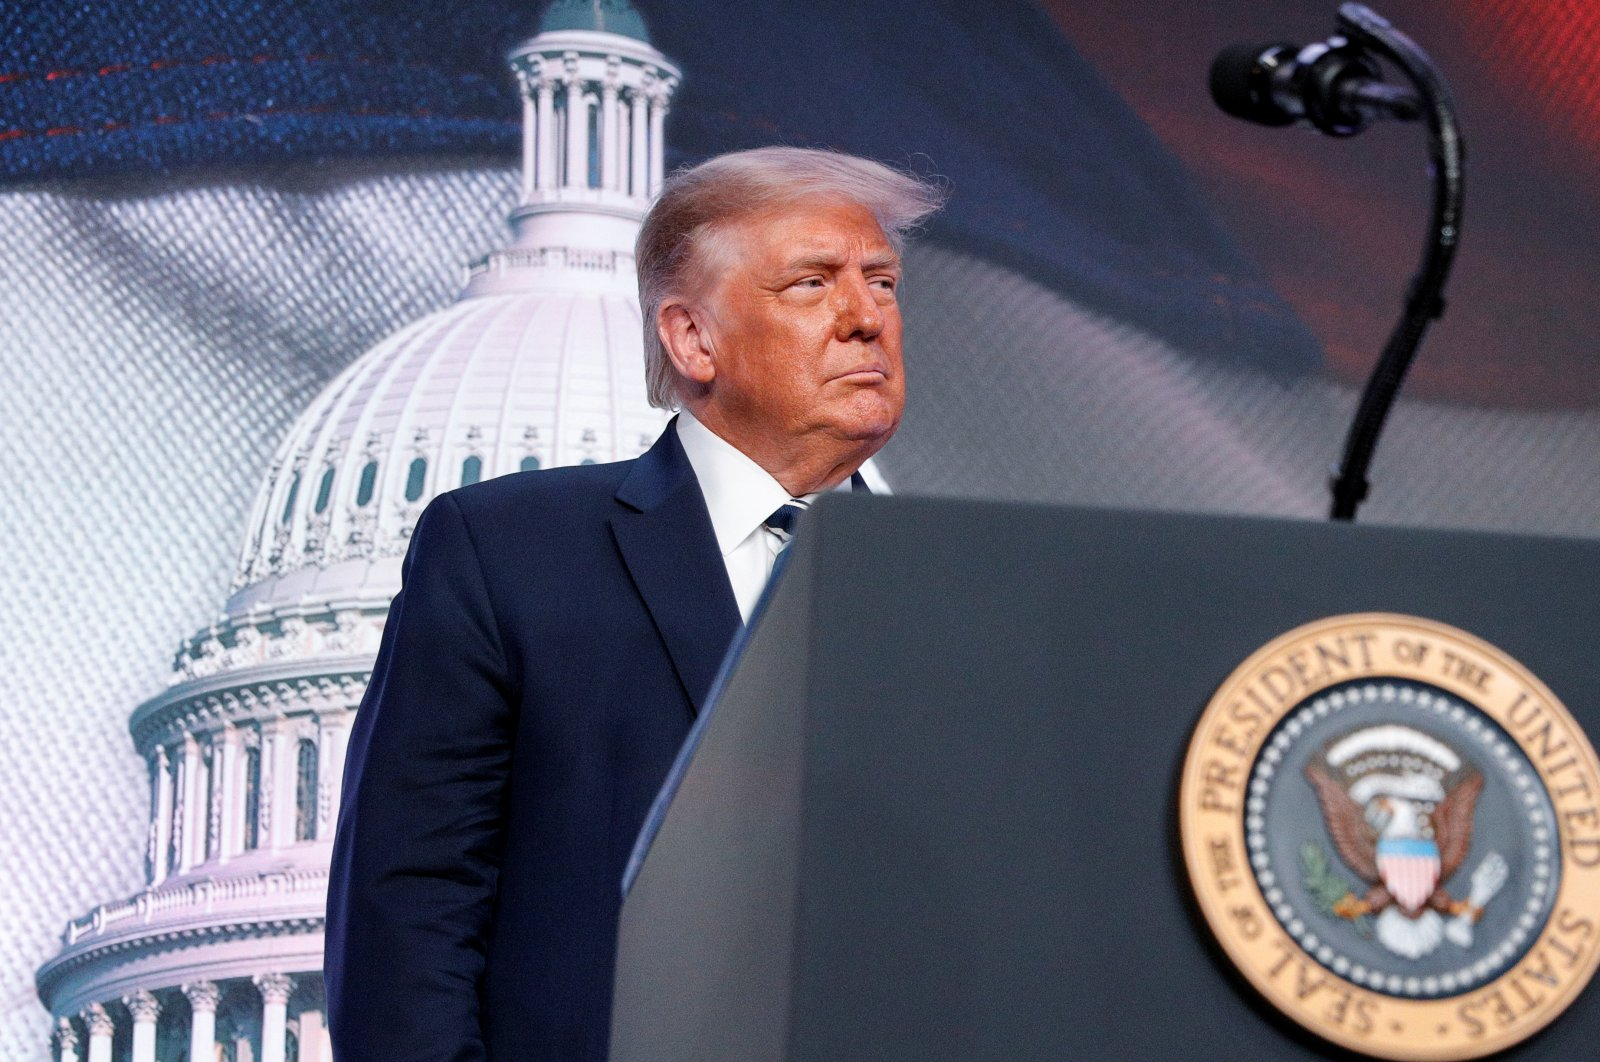 U.S. President Donald Trump arrives to speak at the 2020 Council for National Policy meeting in Arlington, Virginia, U.S., August 21, 2020. (REUTERS Photo)